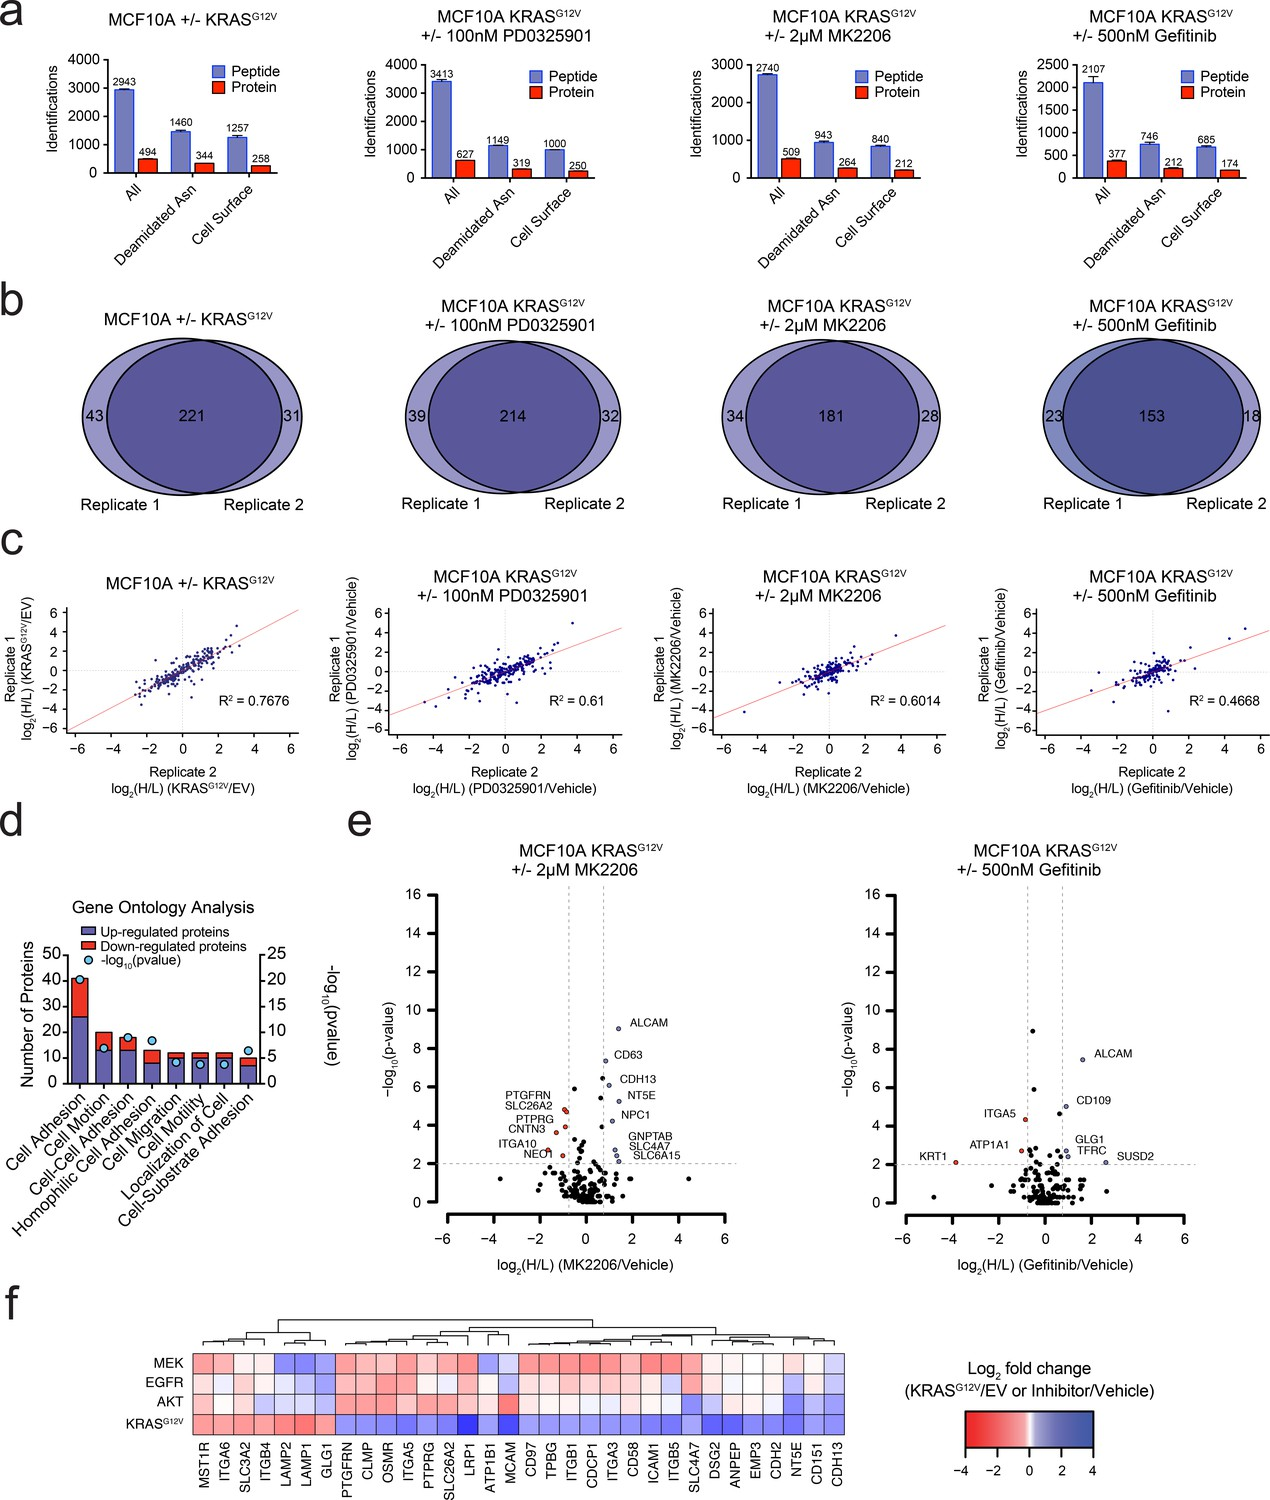 Targeting Ras Driven Human Cancer Cells With Antibodies To Simple Circuit Diagram For Detecting Loss Of 4 20 Ma Signal Oncogenic Kras Signaling Coordinately Regulates The Expression Cell Surface Proteins In A Model Epithelial